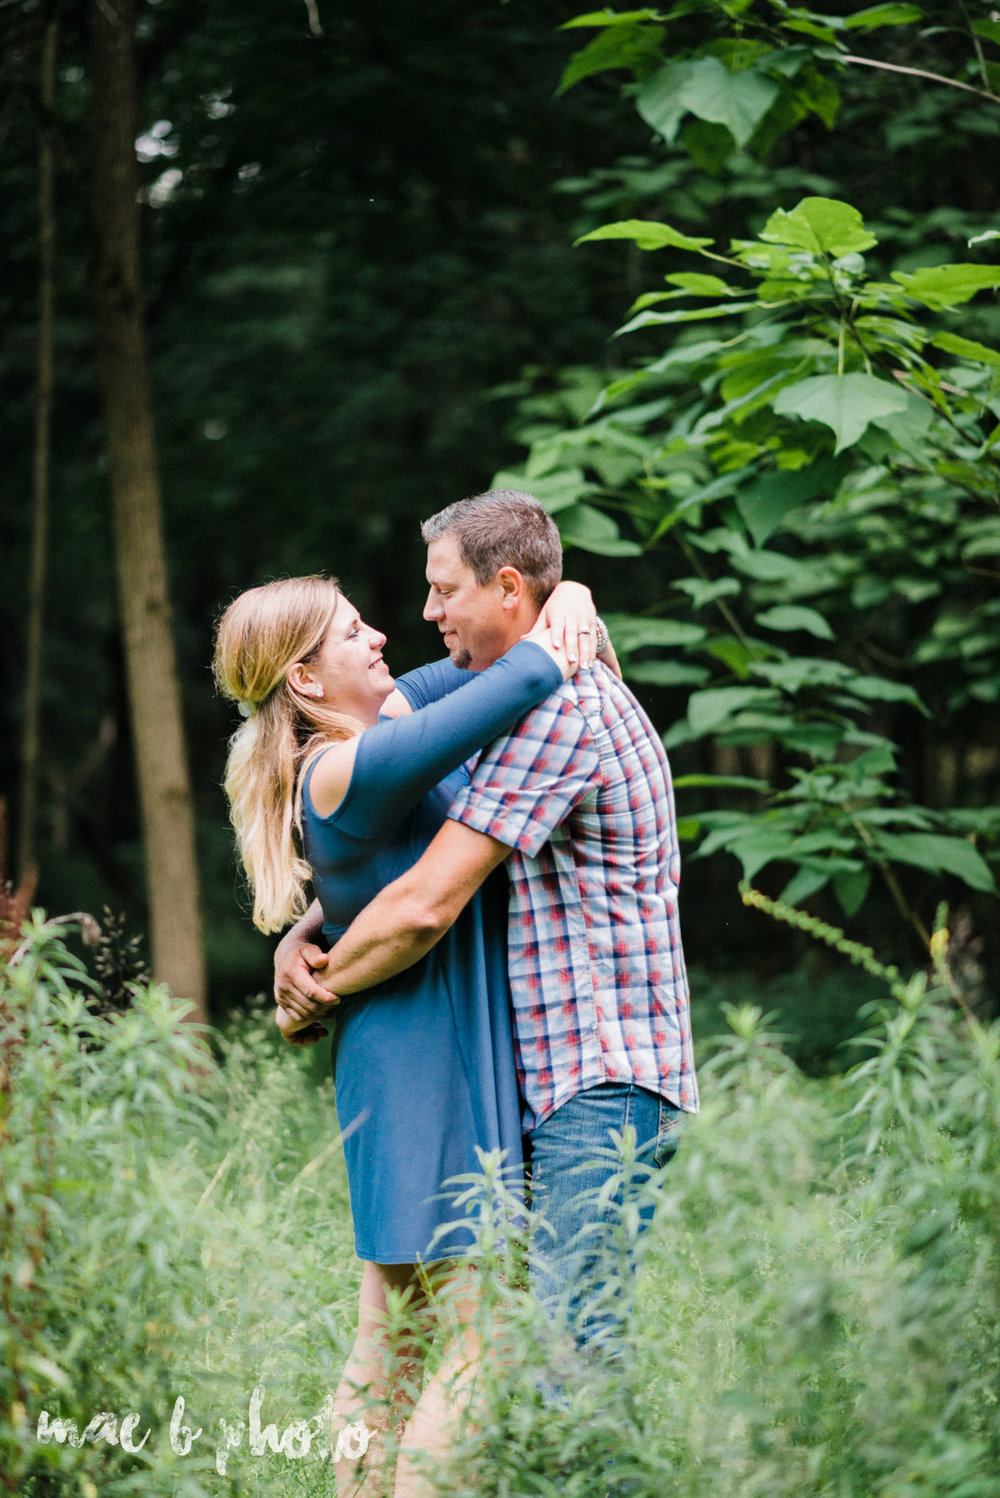 becca and rich's woodsy summer engagement session at ford nature center in mill creek park in youngstown ohio photographed by cleveland wedding photographer mae b photo-45.jpg